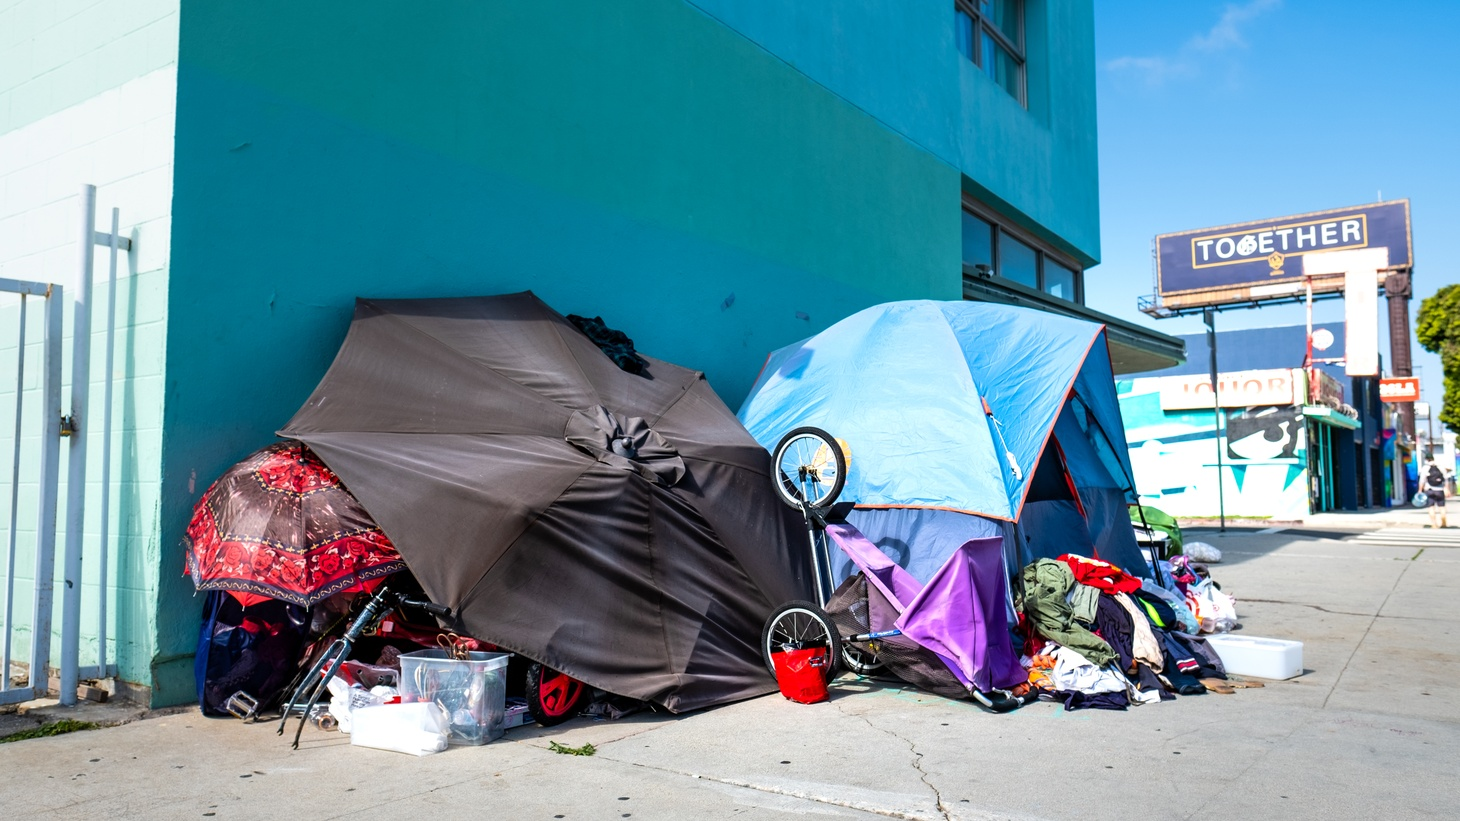 A homeless encampment in Mar Vista, April 18, 2020. The latest homeless count estimates the county's homeless population at 66,433, up nearly 13% from last year.